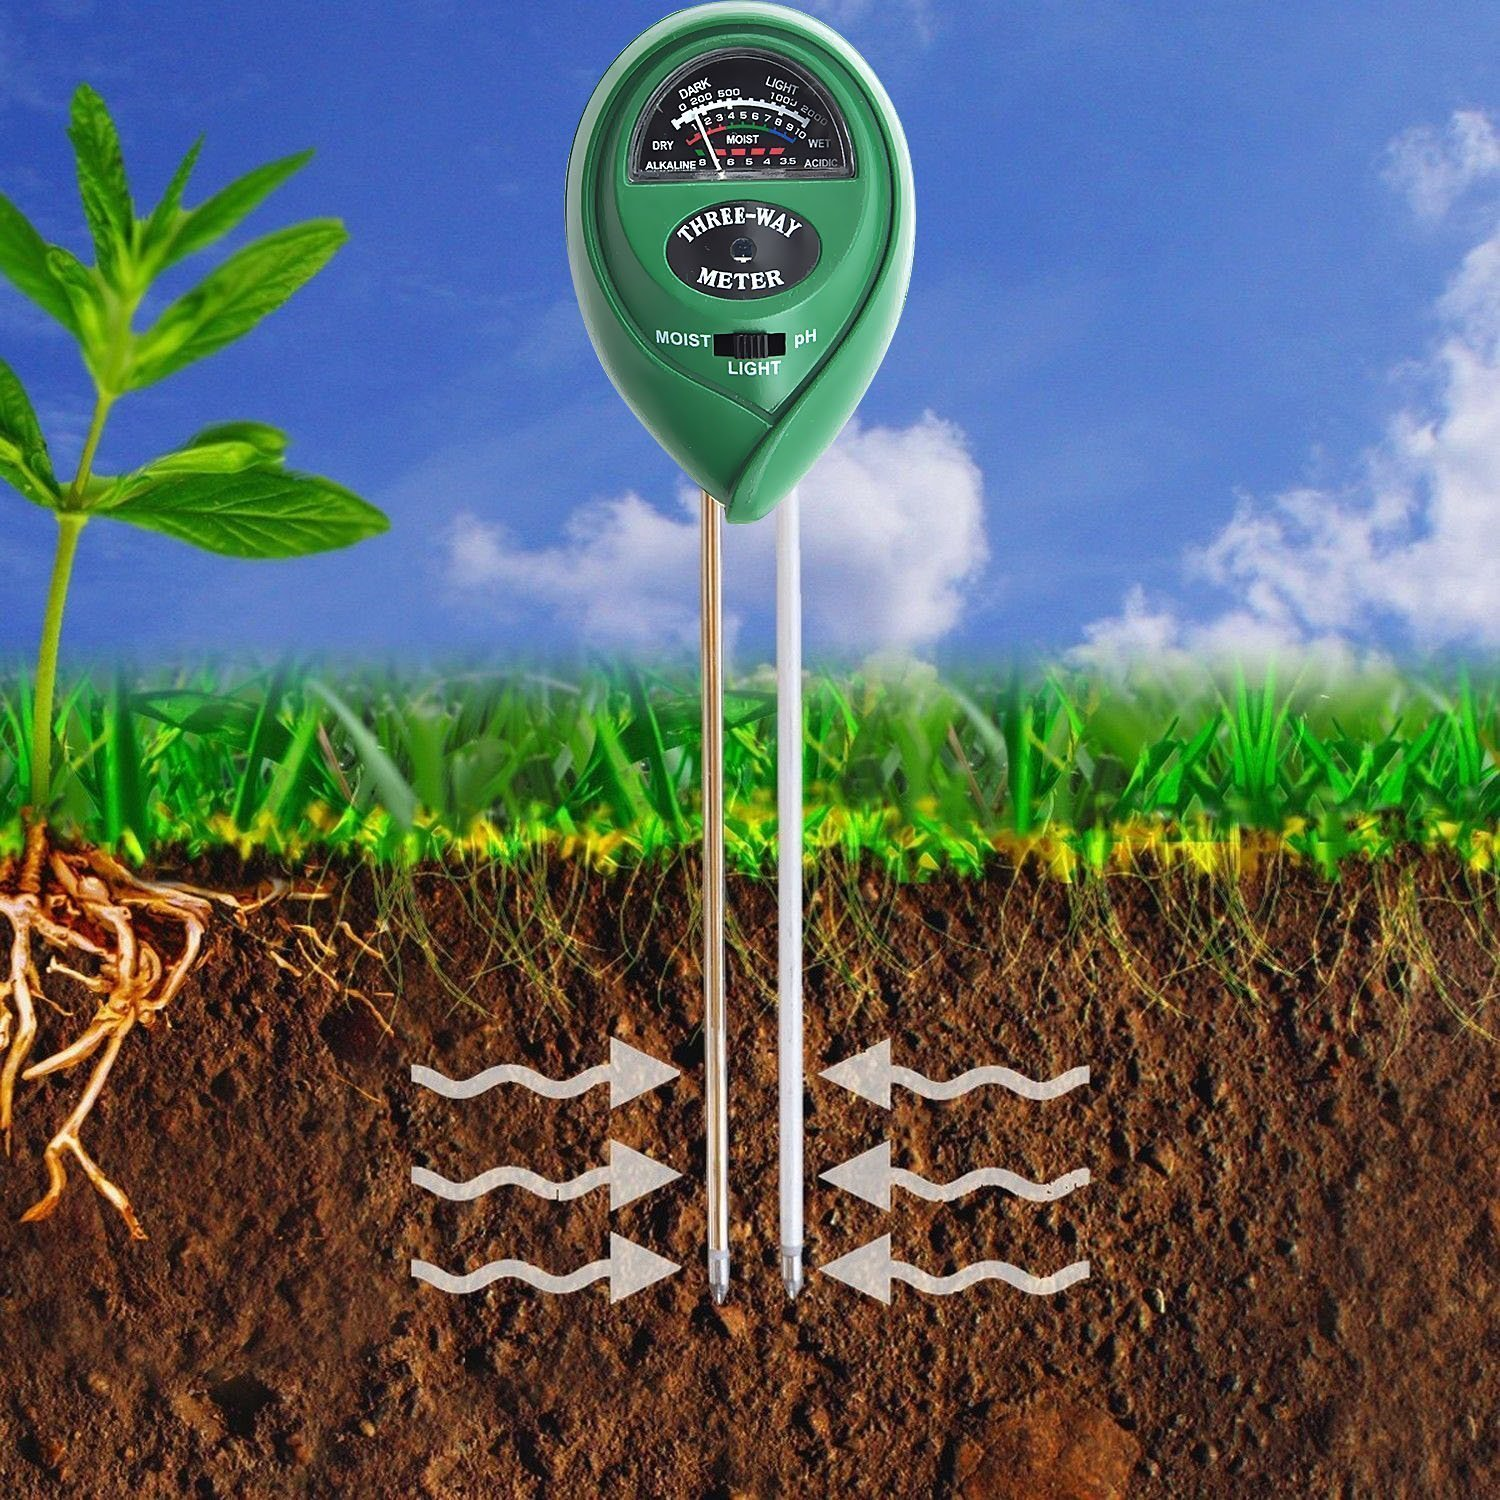 Ebeauty Soil Moisture, Light and pH Testing 3-in-1 Soil Tester Meter for Indoor or Outdoor Plants Flowers Grass and Lawn